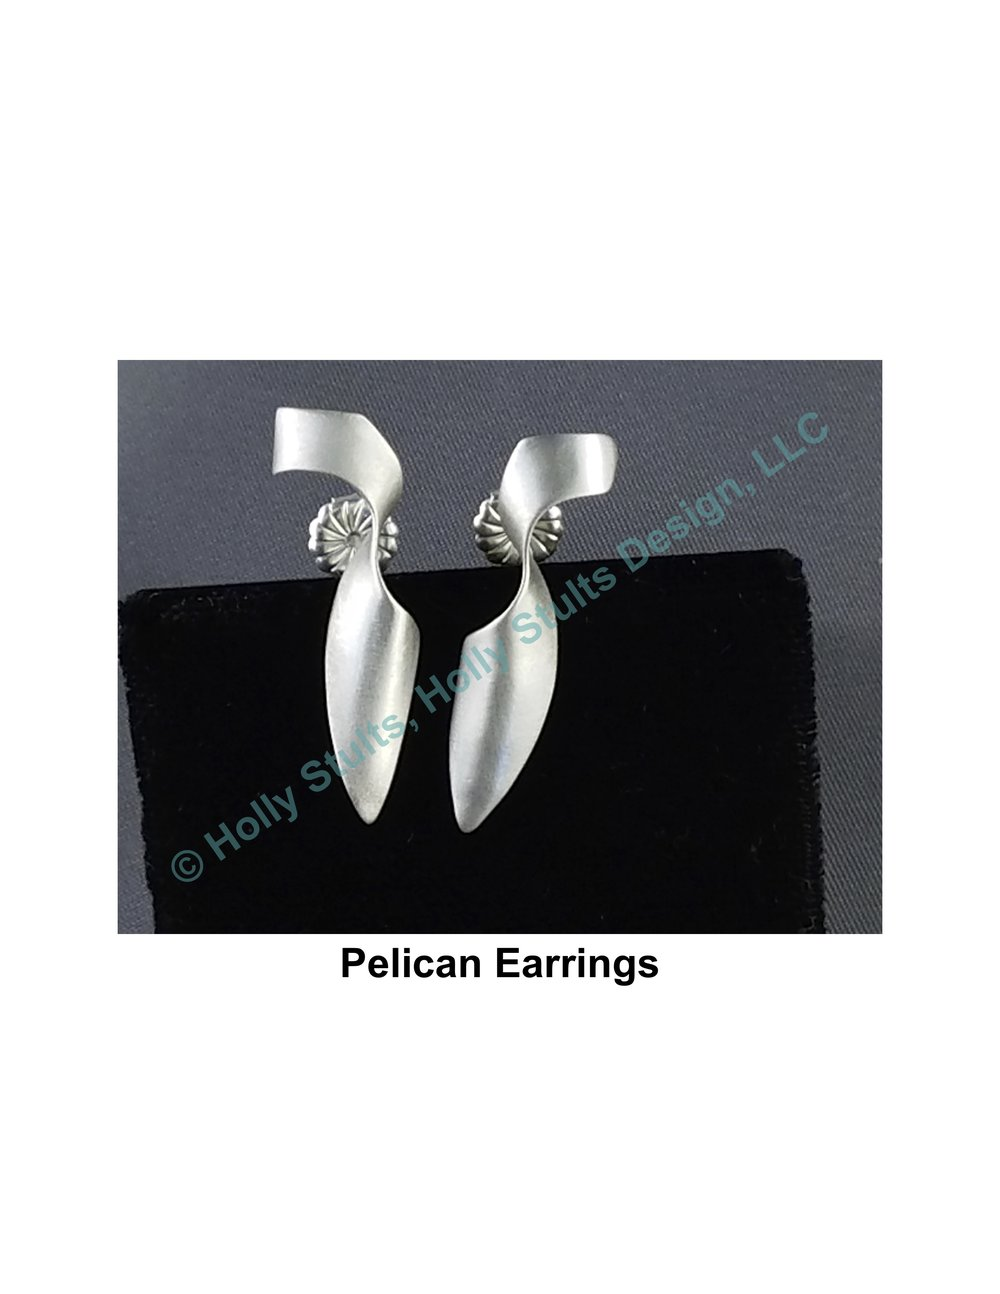 Pelican Earrings.jpg